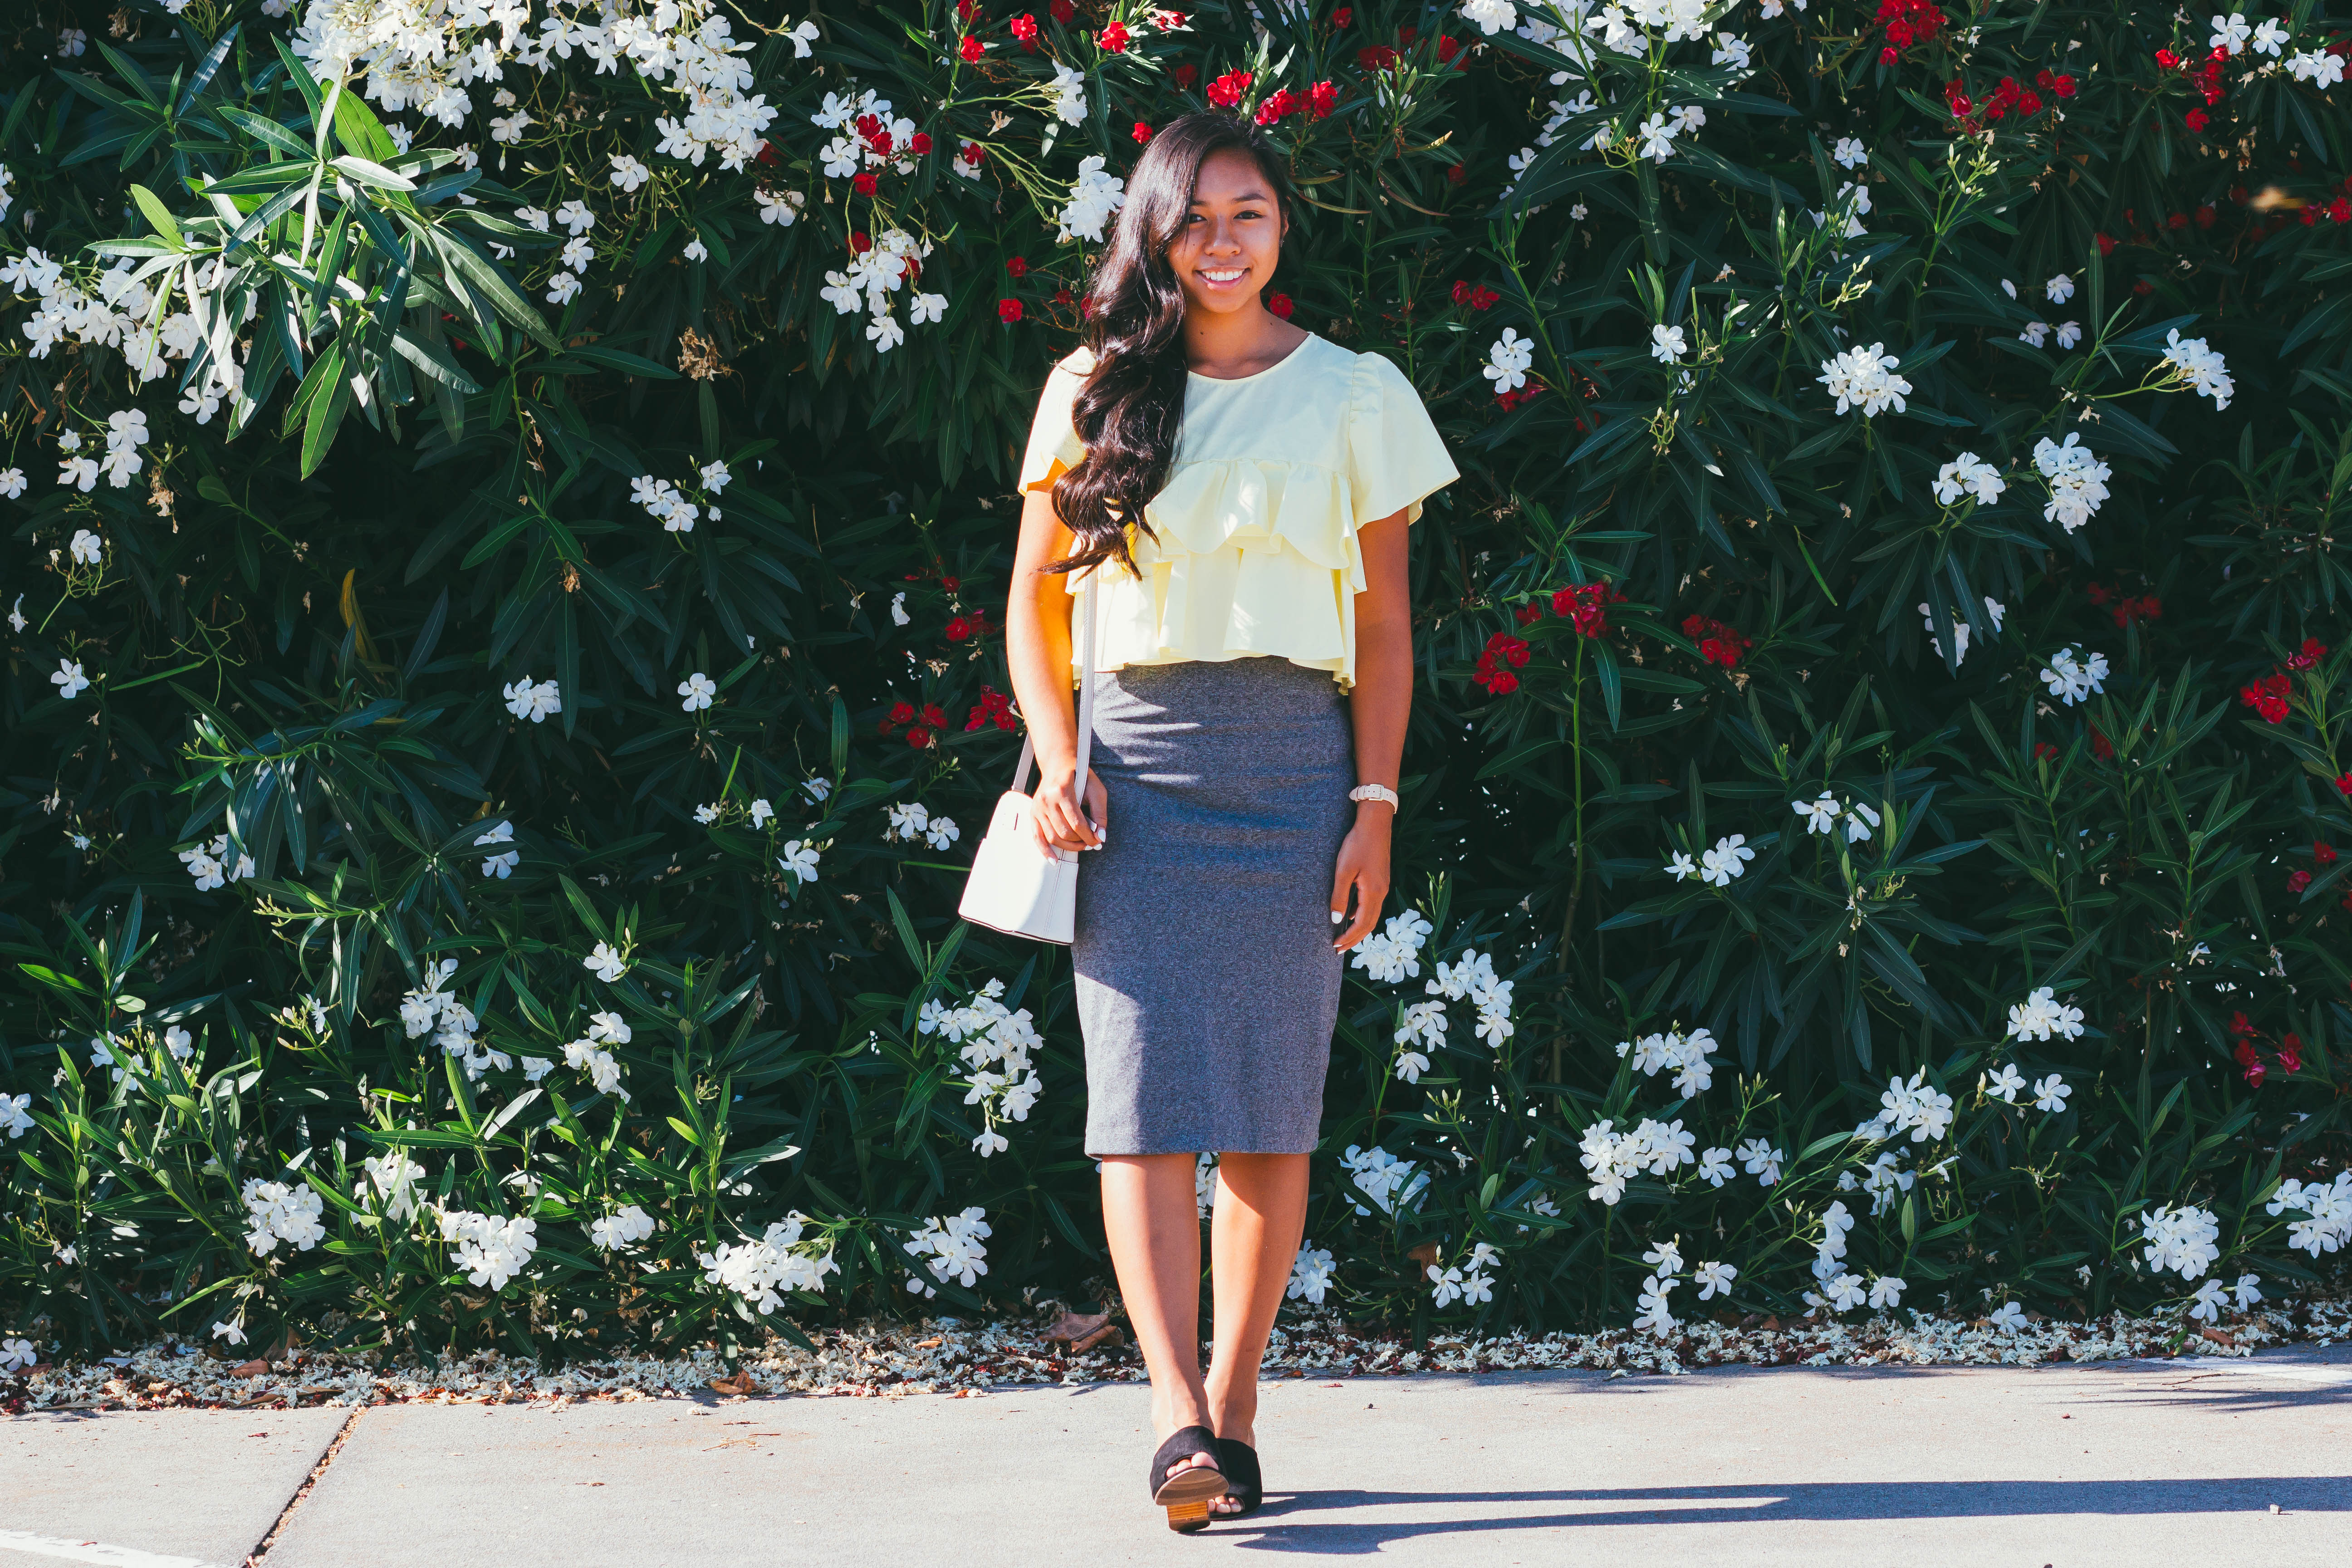 Keep a Grateful Spirit | Zara yellow top, H&M gray skirt, and black heels modest outfit for the summer